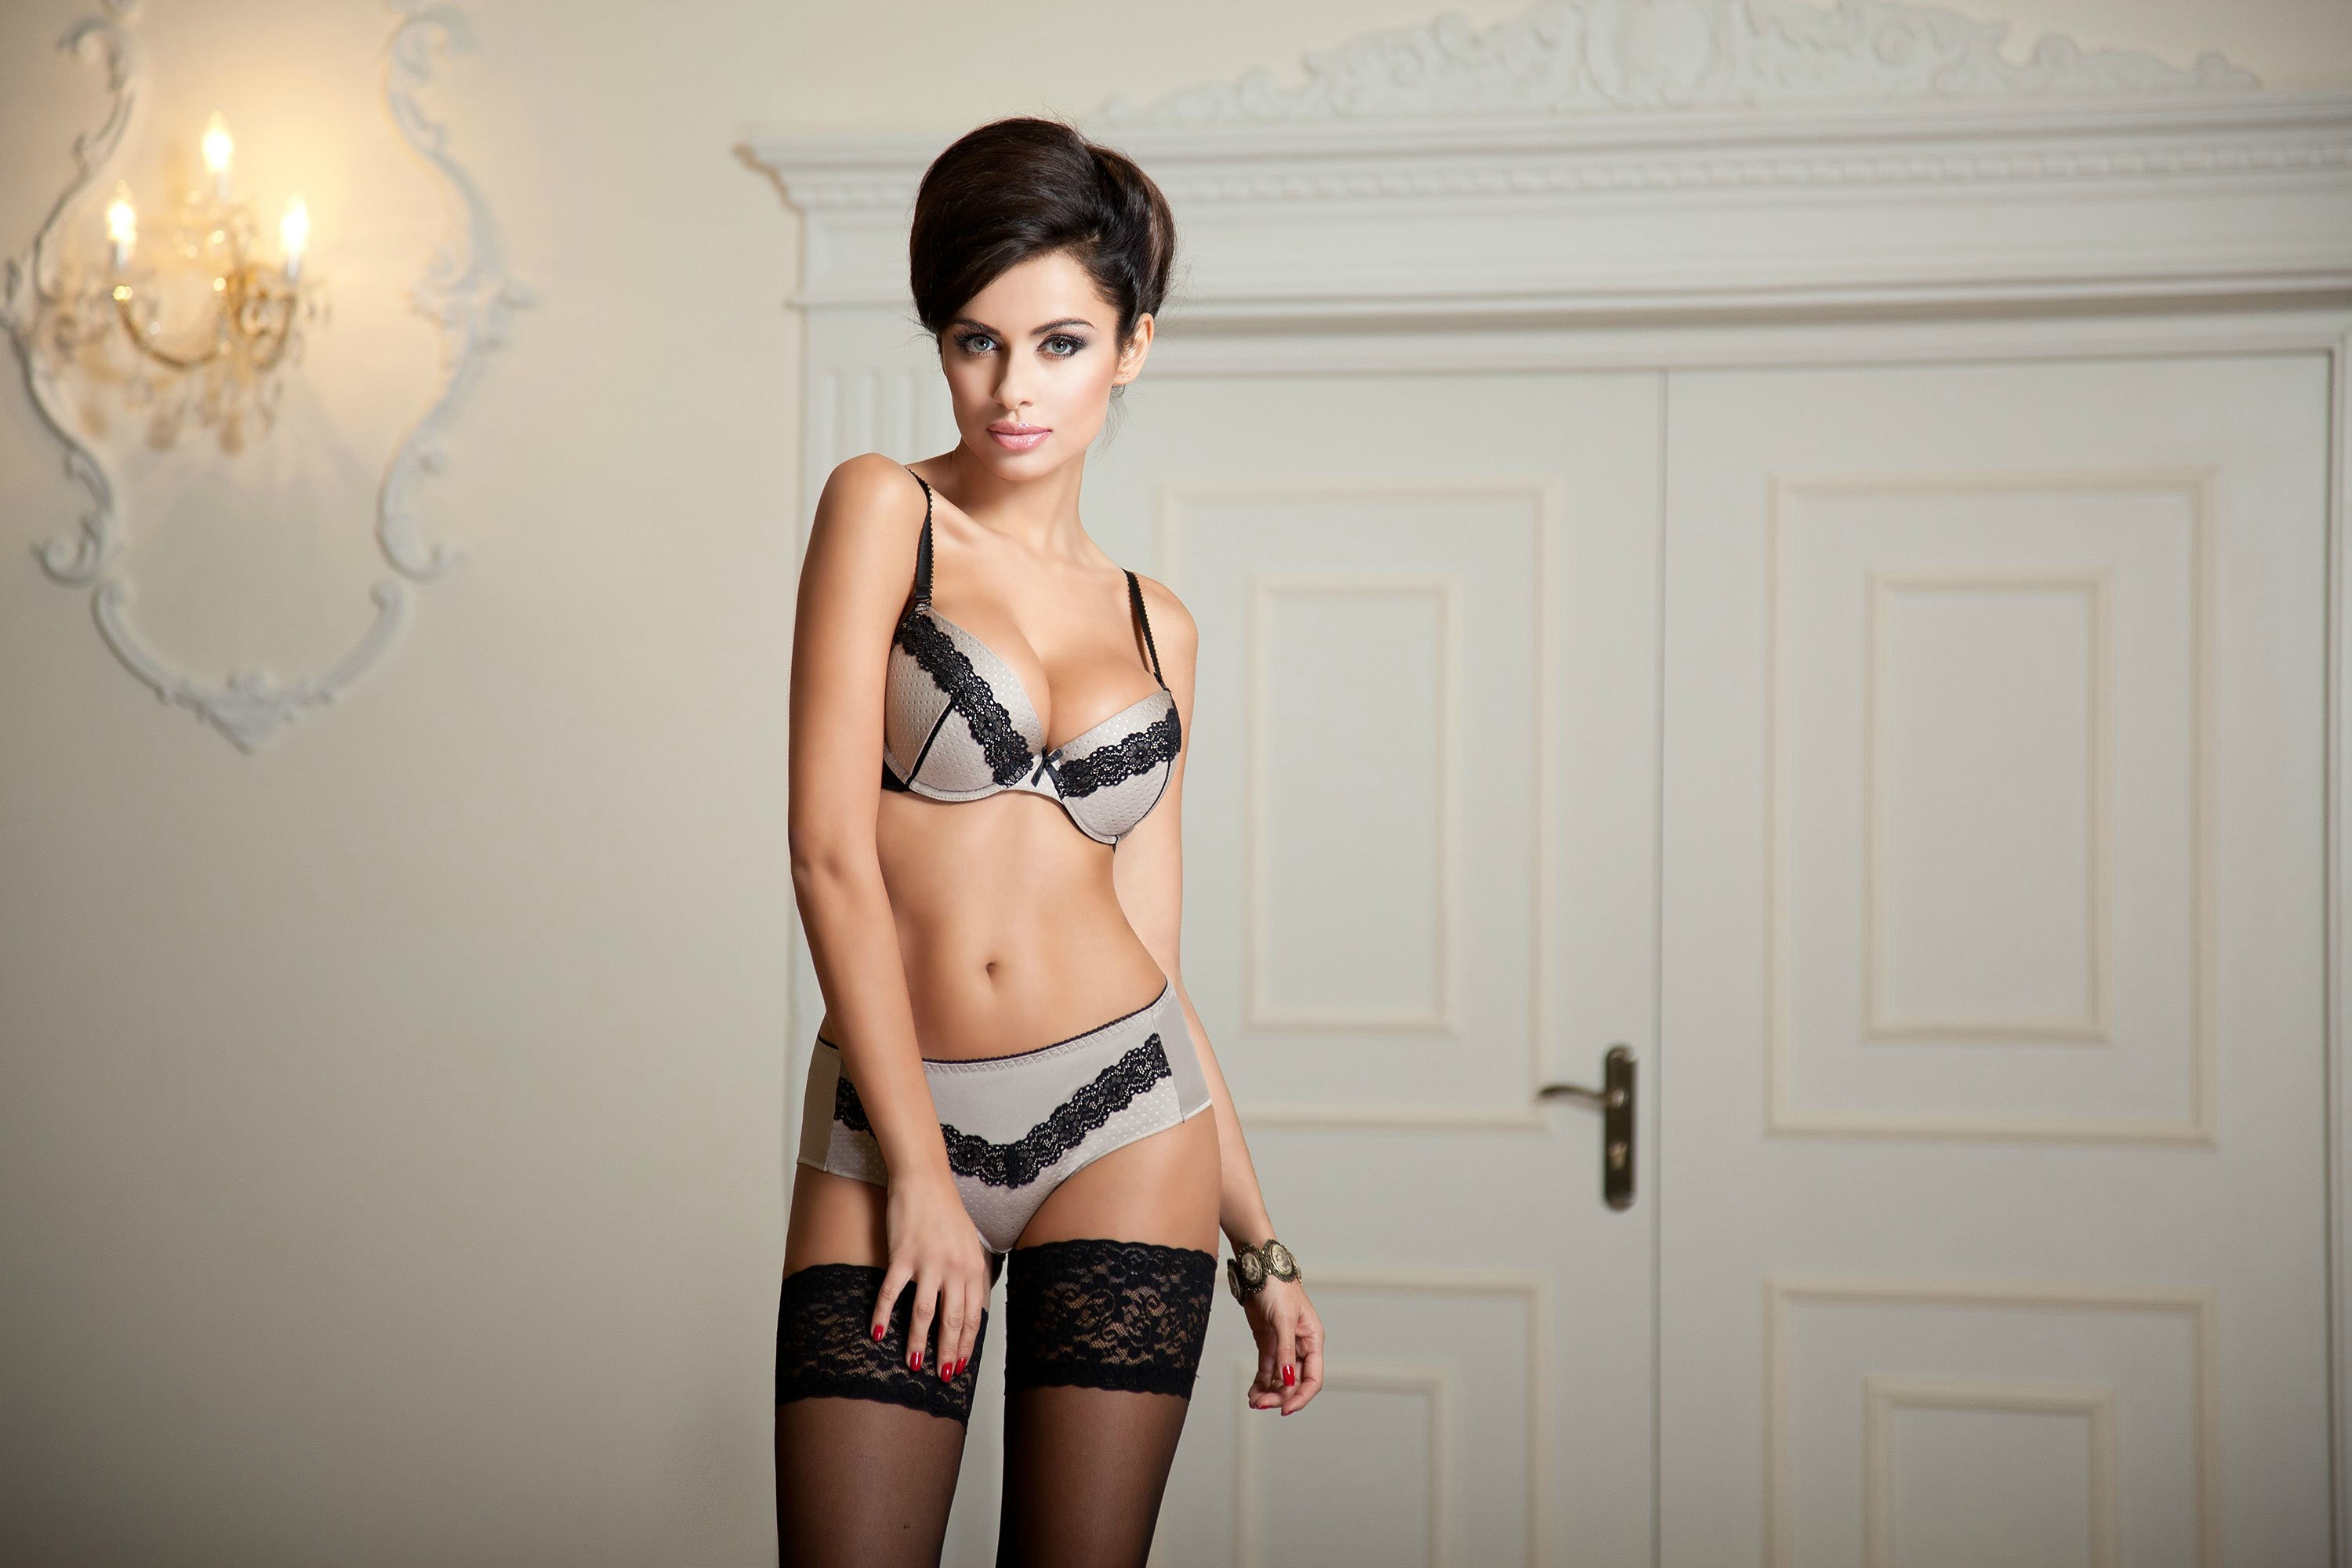 cool lingerie model - Natalia Siwiec